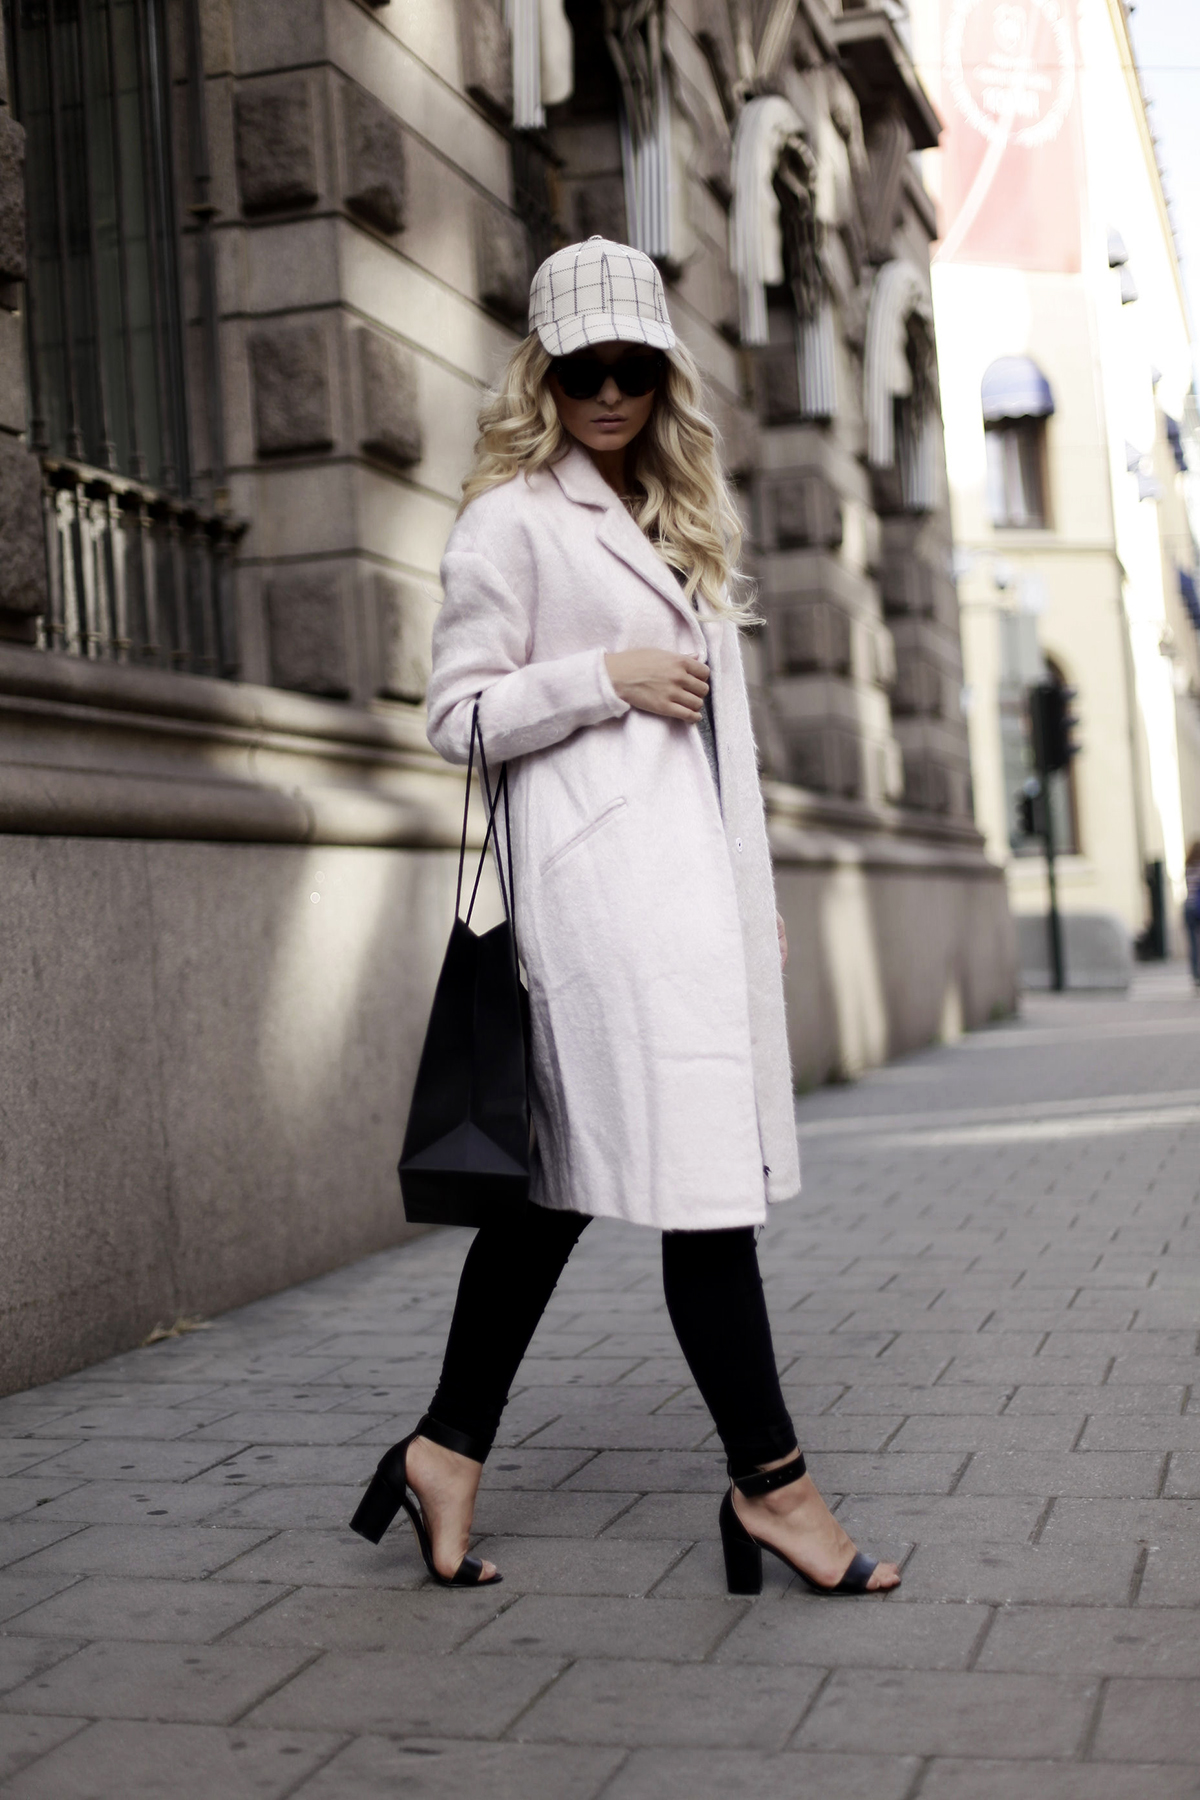 Marie Wolla is wearing a pink mohair coat from Only, plaid cap and grey T-Shirt from Monki, black jeans from Dr. Denim, shoes from Nelly and sunglasses from Celine